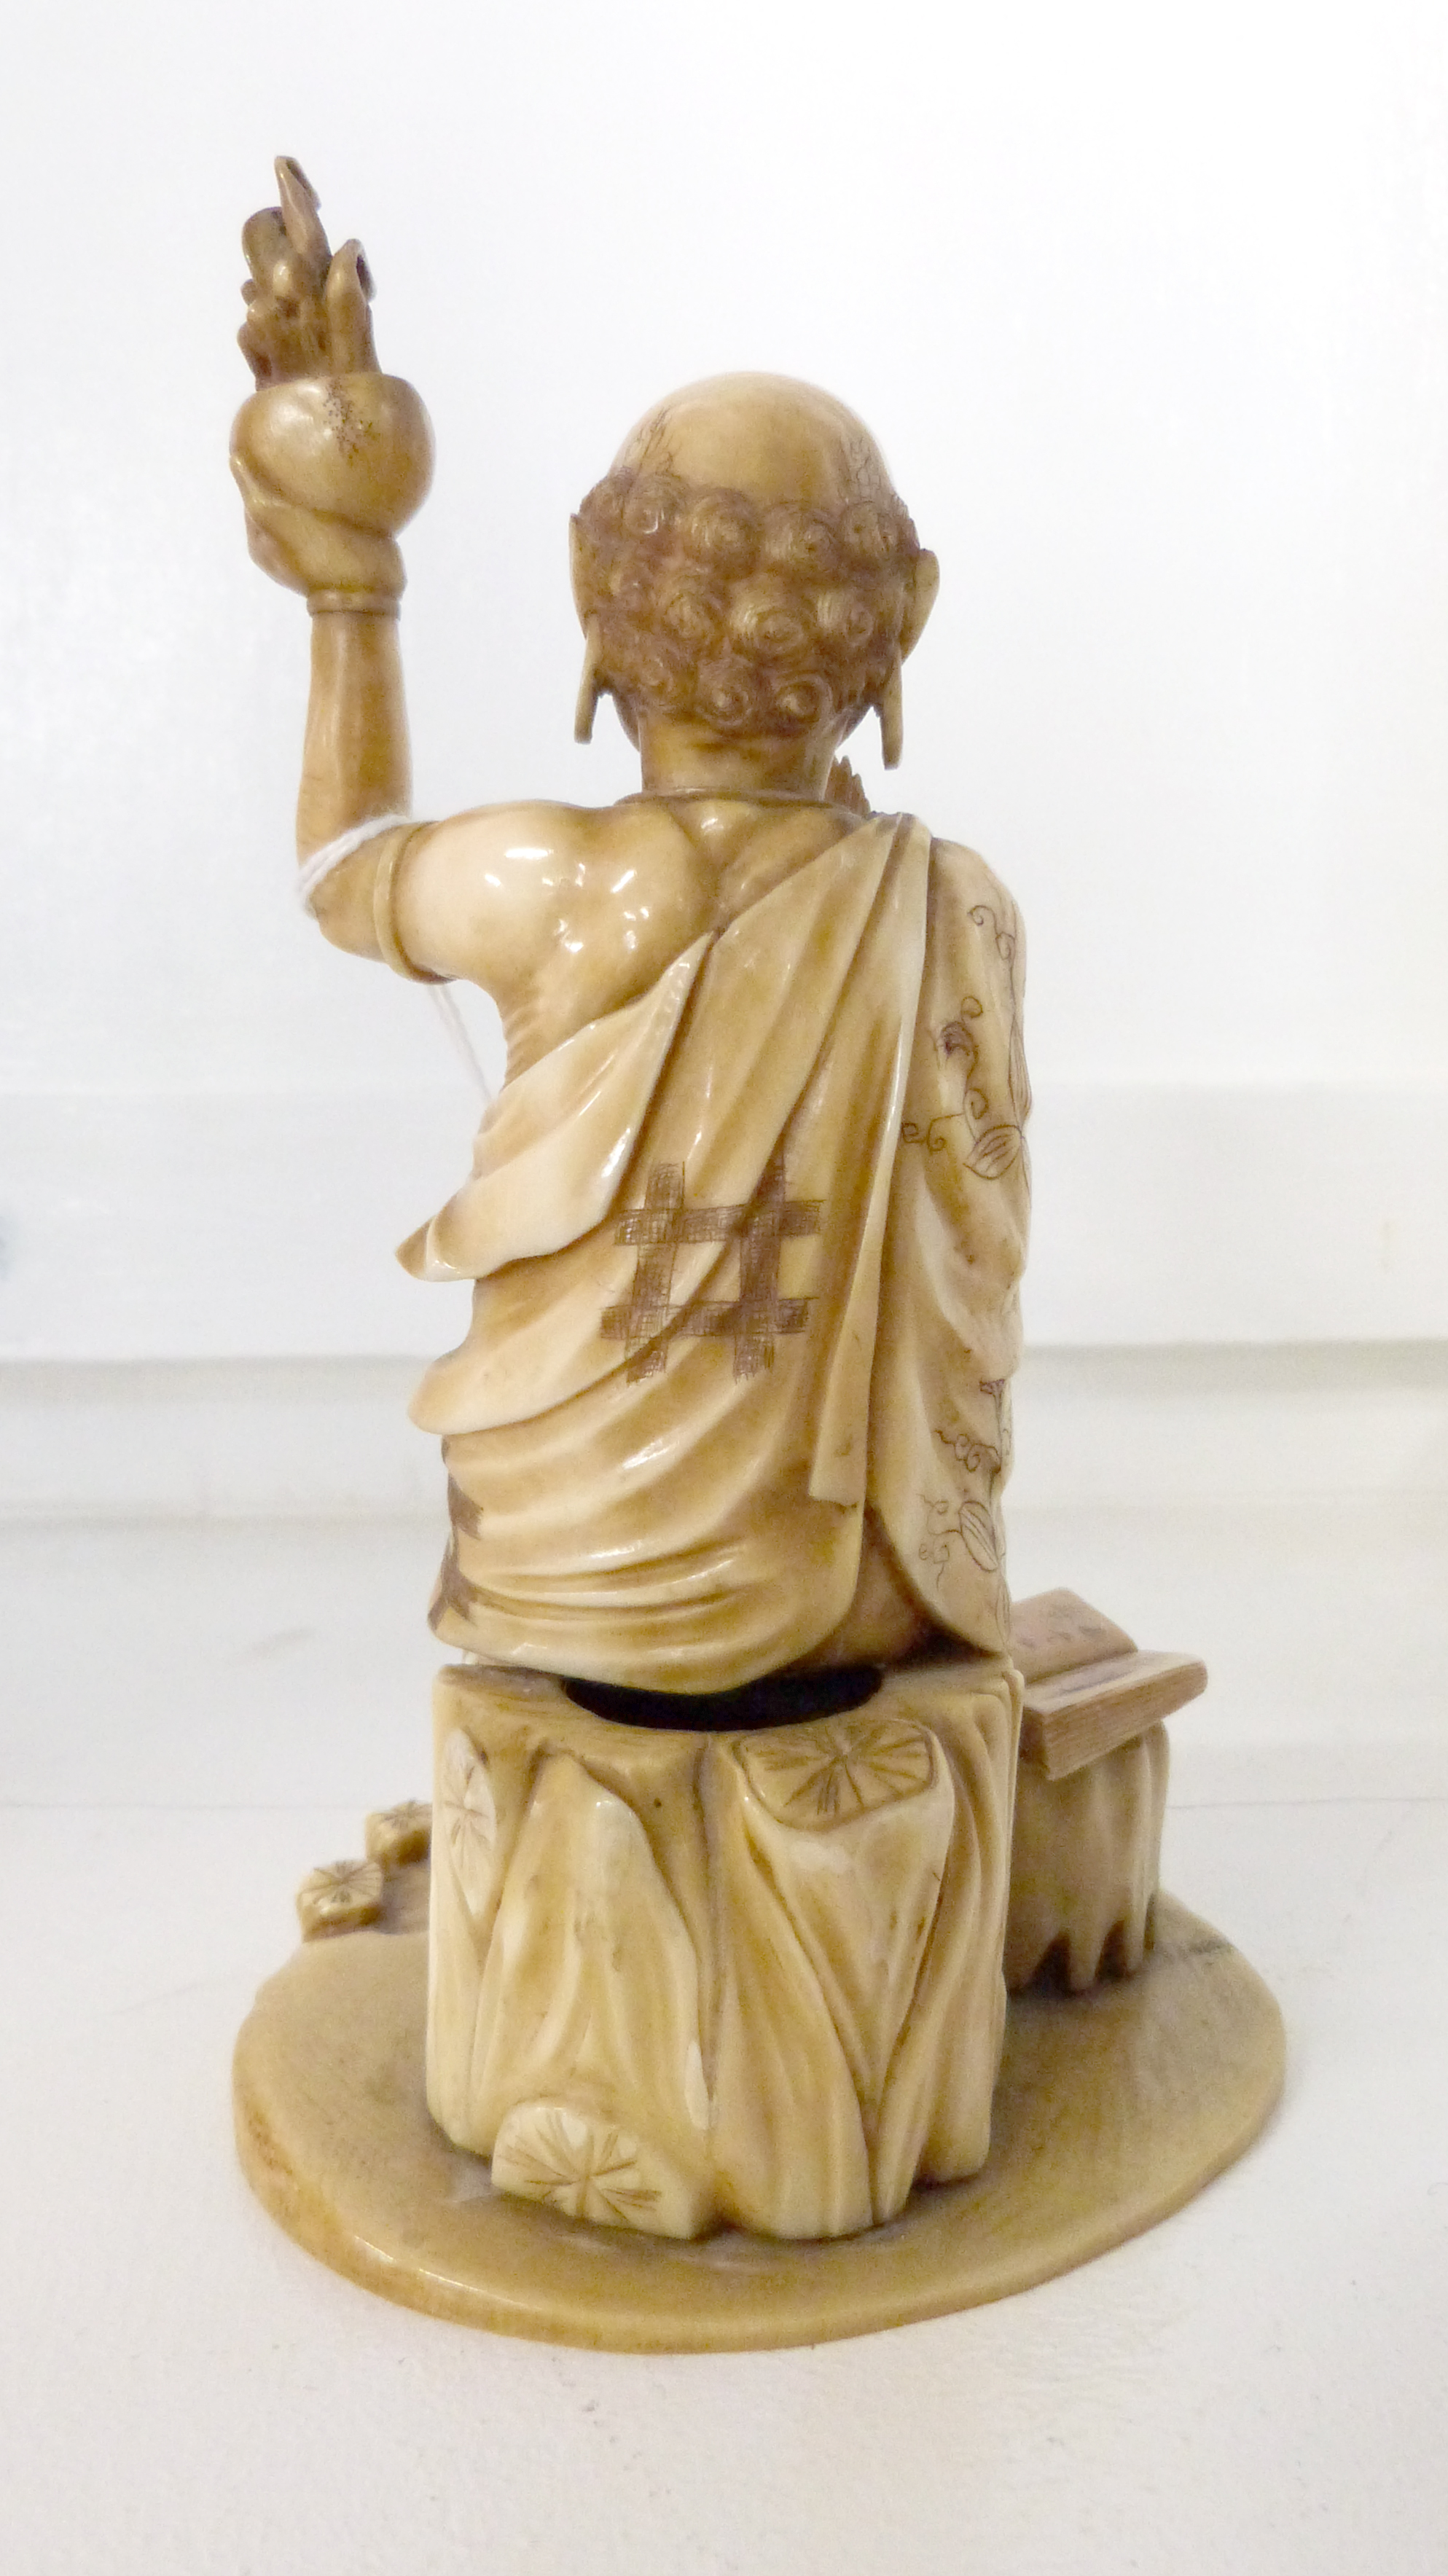 Ivory Okimono modelled as a priest, 15cm high - Image 2 of 3